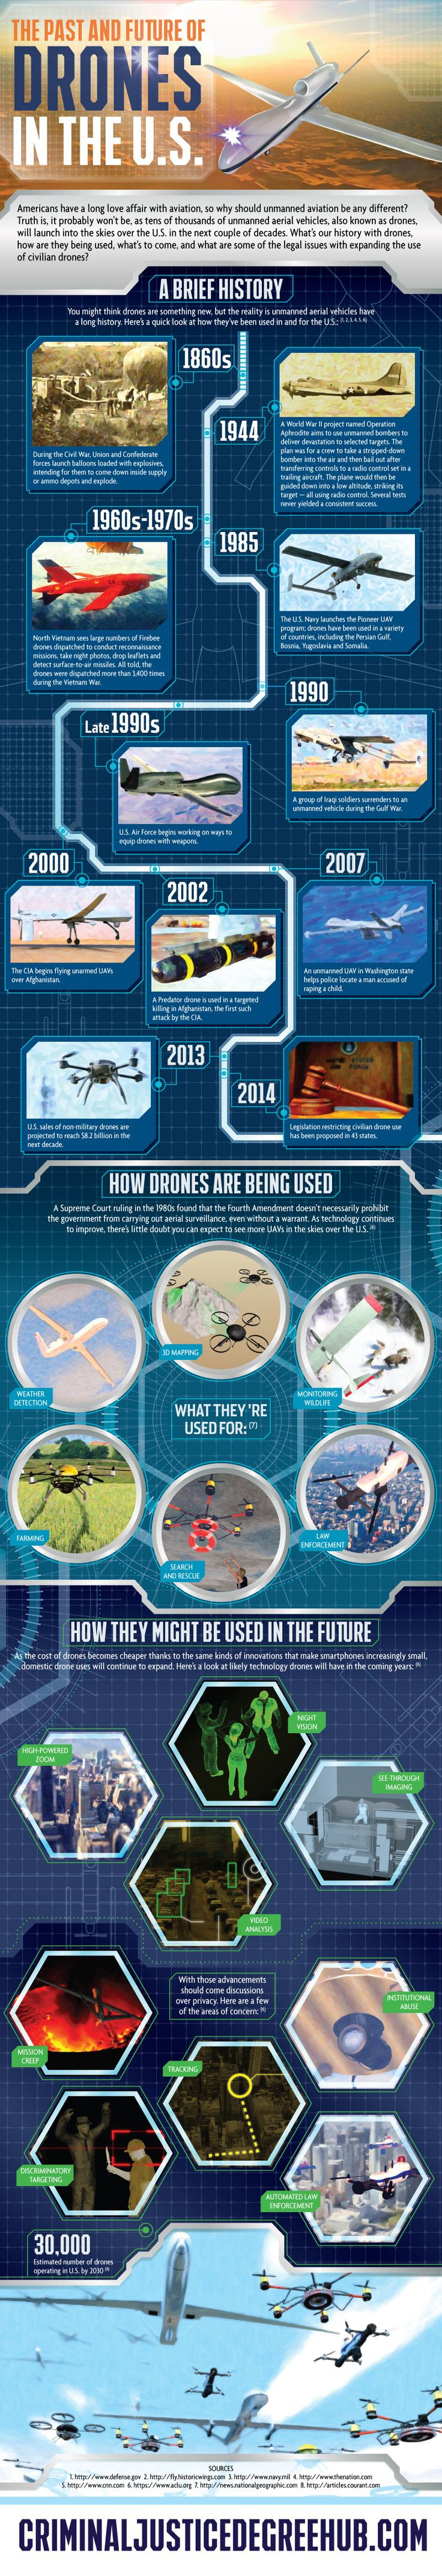 Infographic: The Past and Future of Drones in the U.S